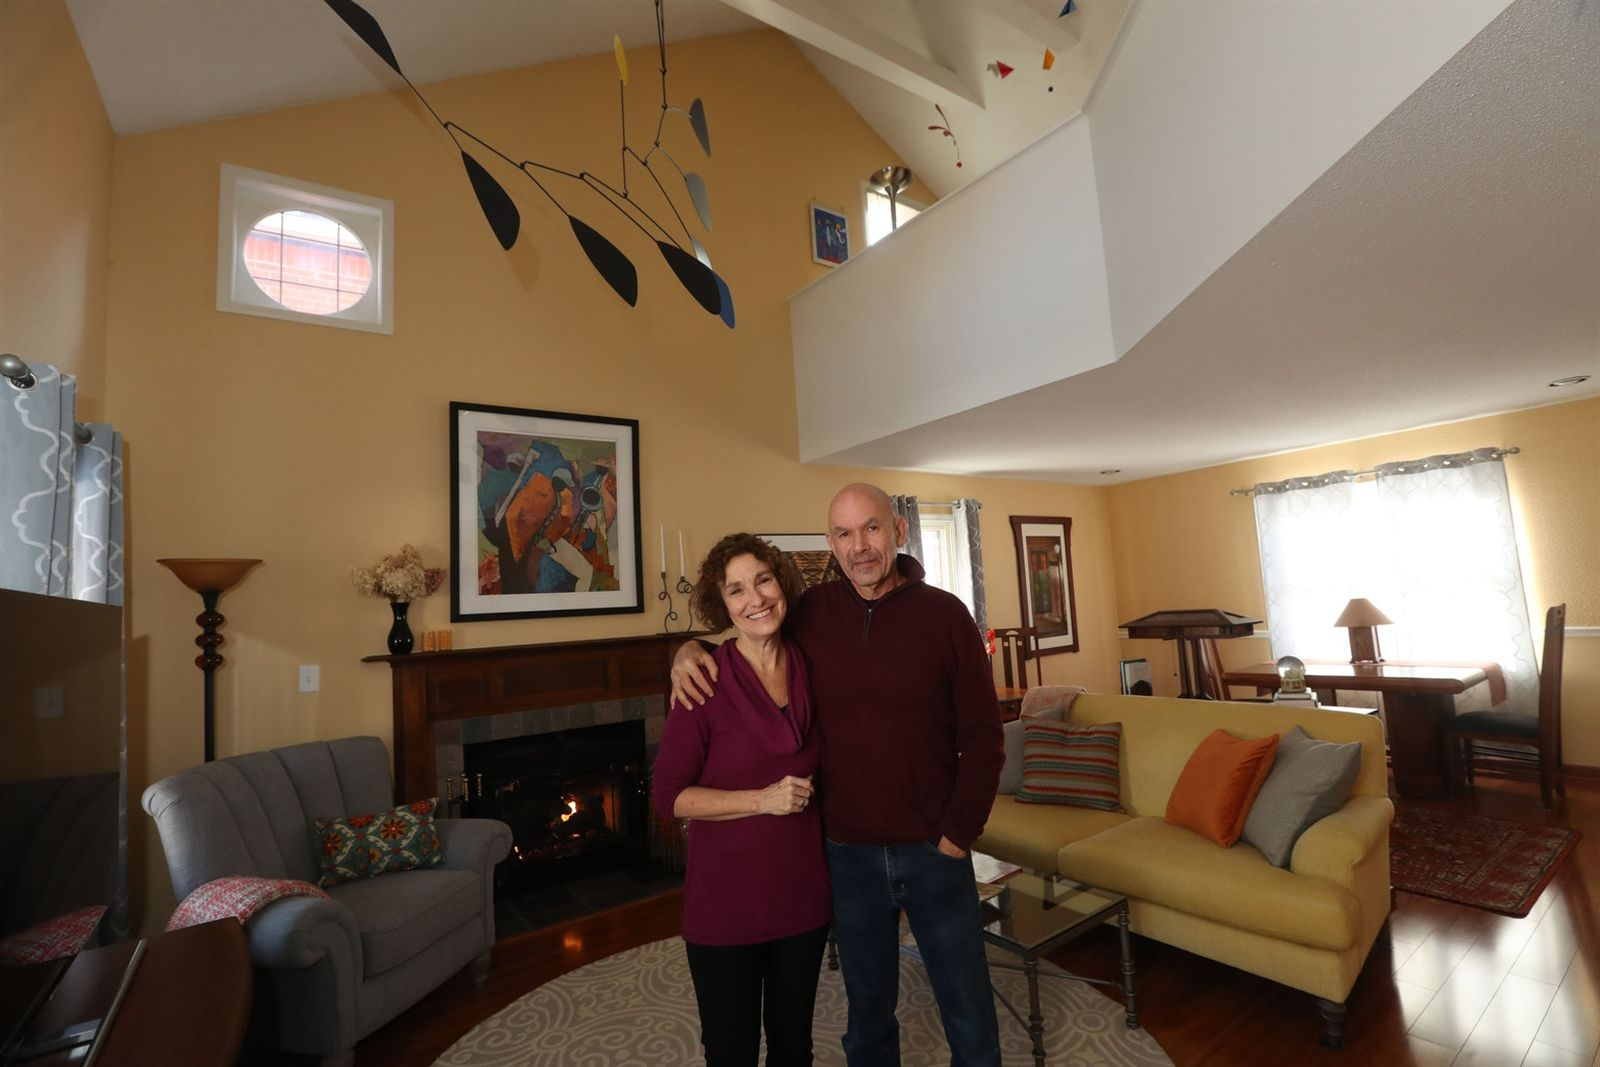 Nancy and Steve Siegel in the living room of their home in Buffalo.